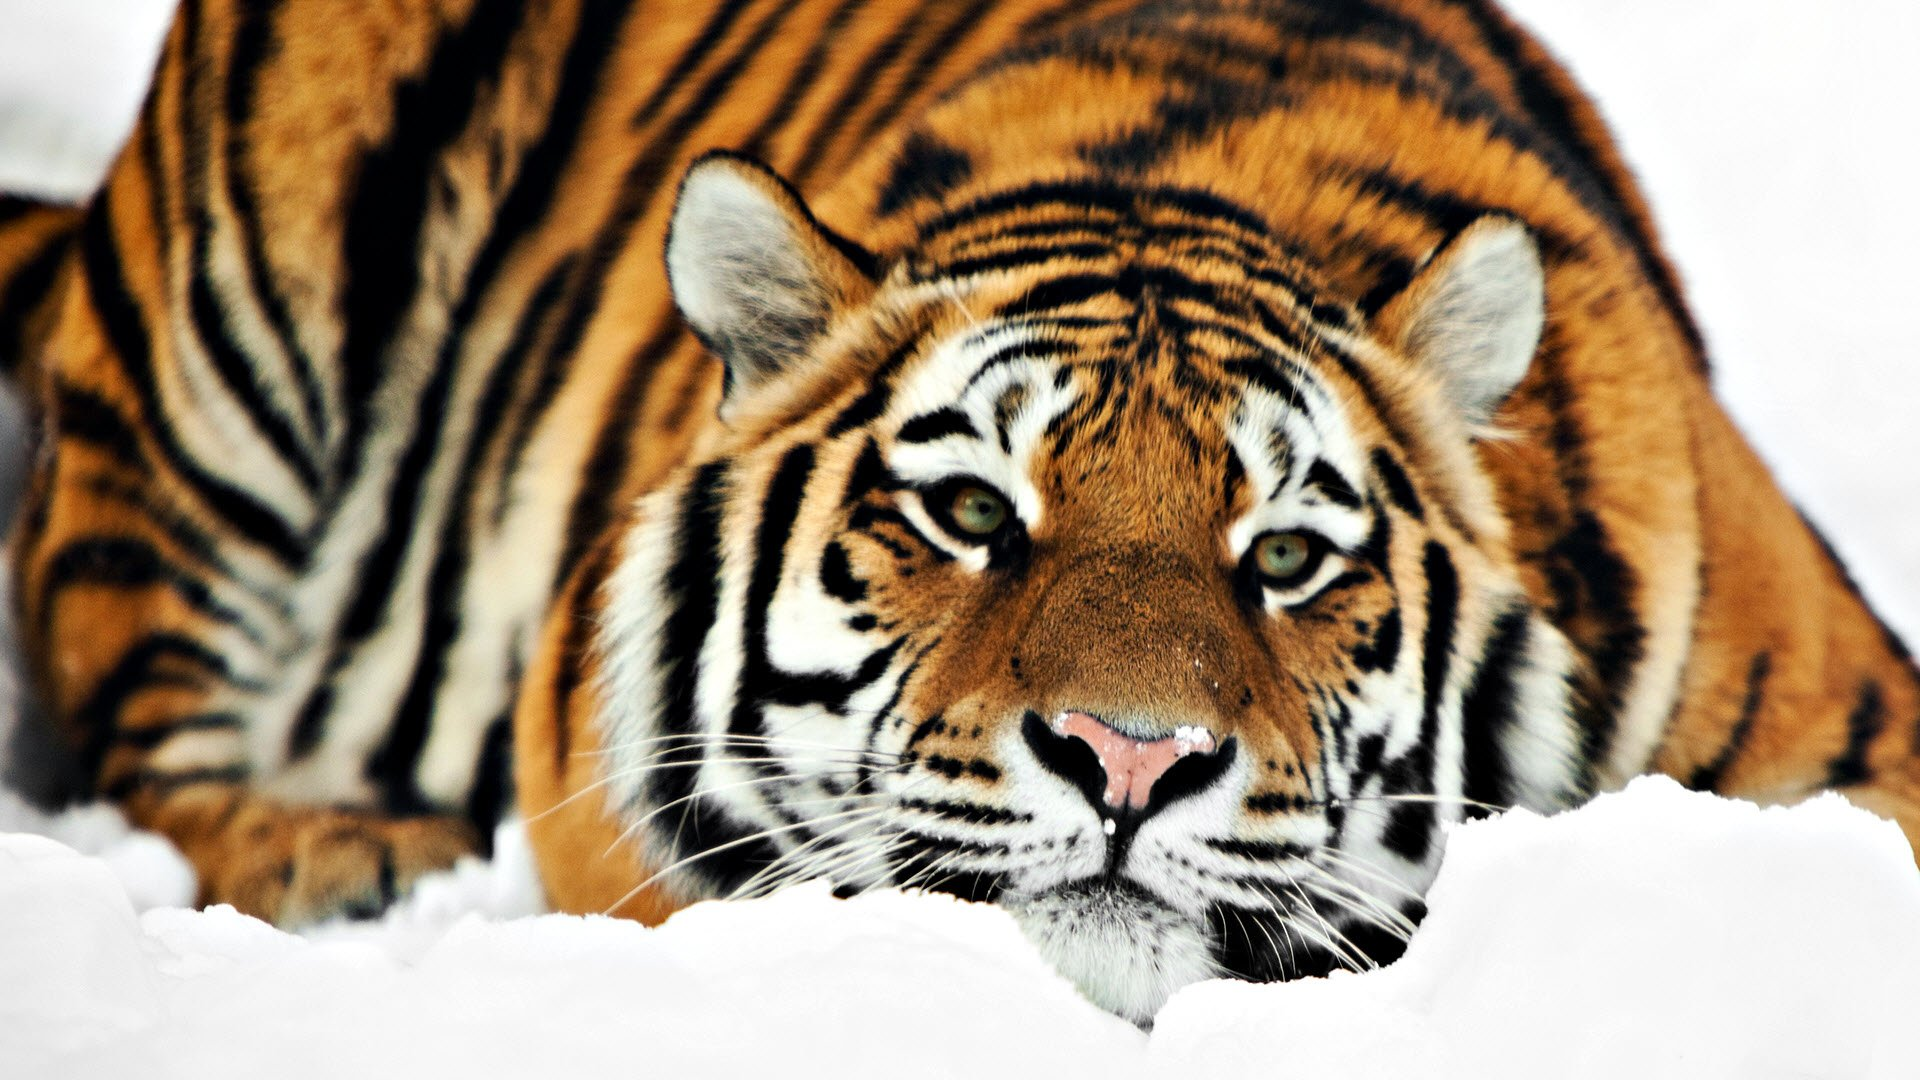 Tiger HD 1080p Wallpapers HD Wallpapers 1920x1080